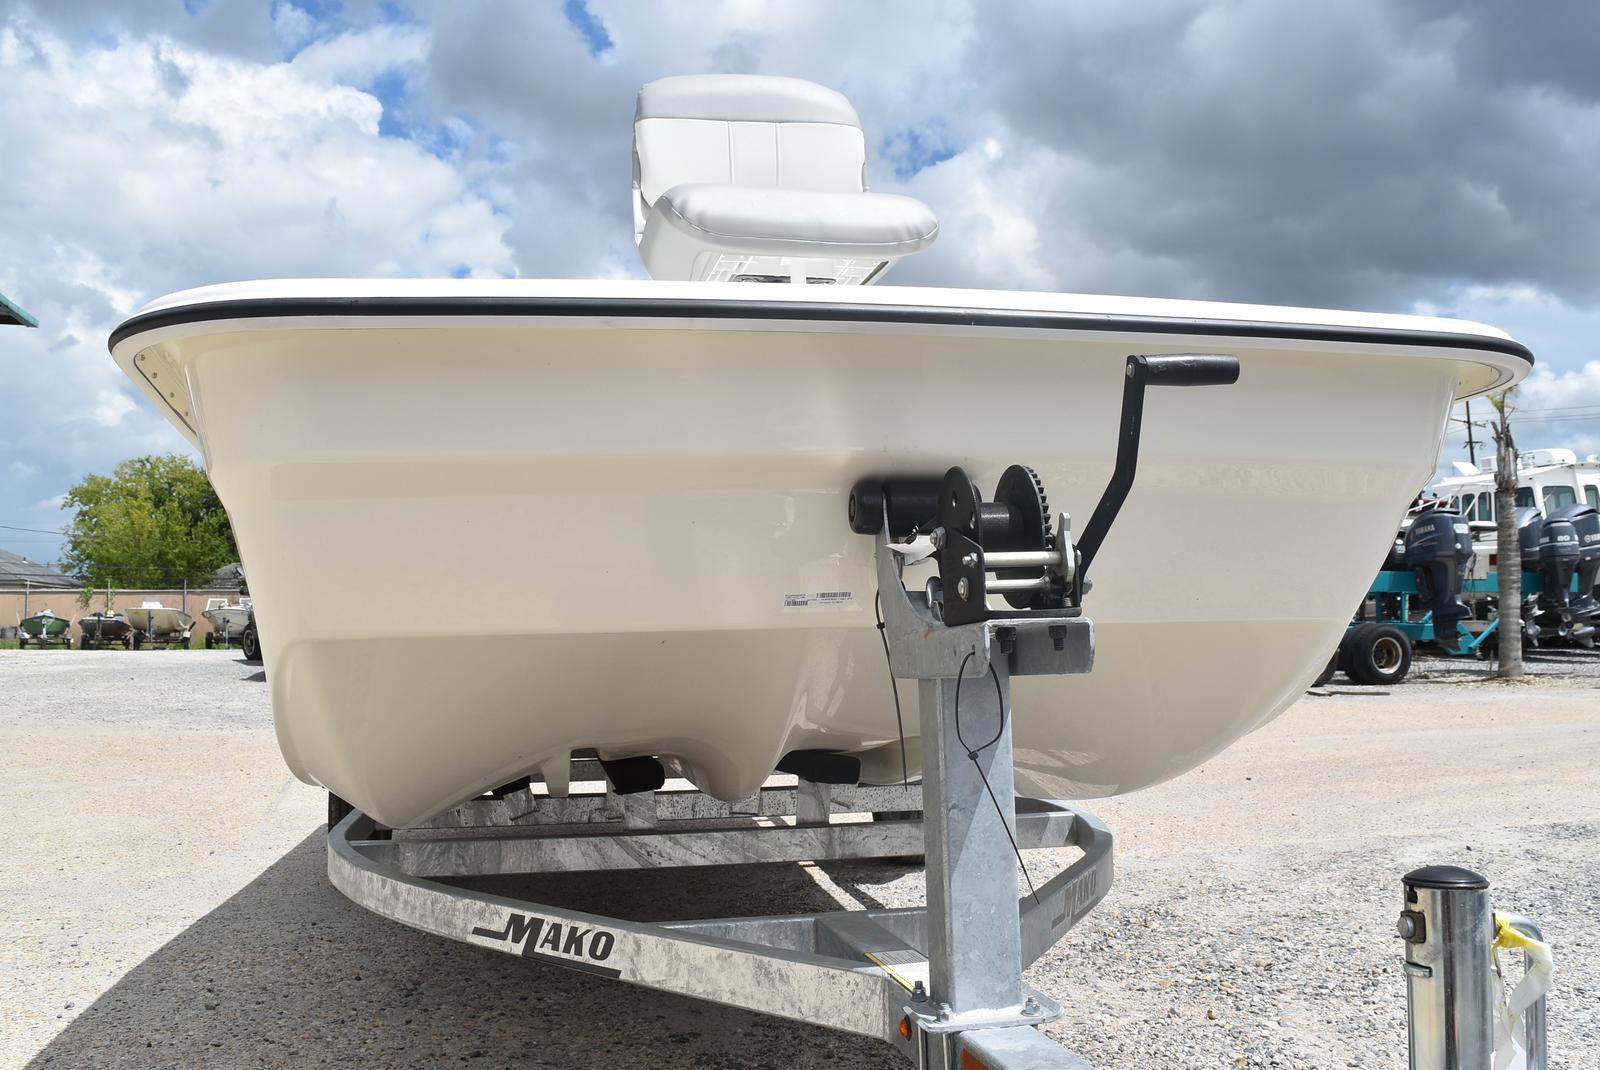 2020 Mako boat for sale, model of the boat is Pro Skiff 17, 75 ELPT & Image # 375 of 702